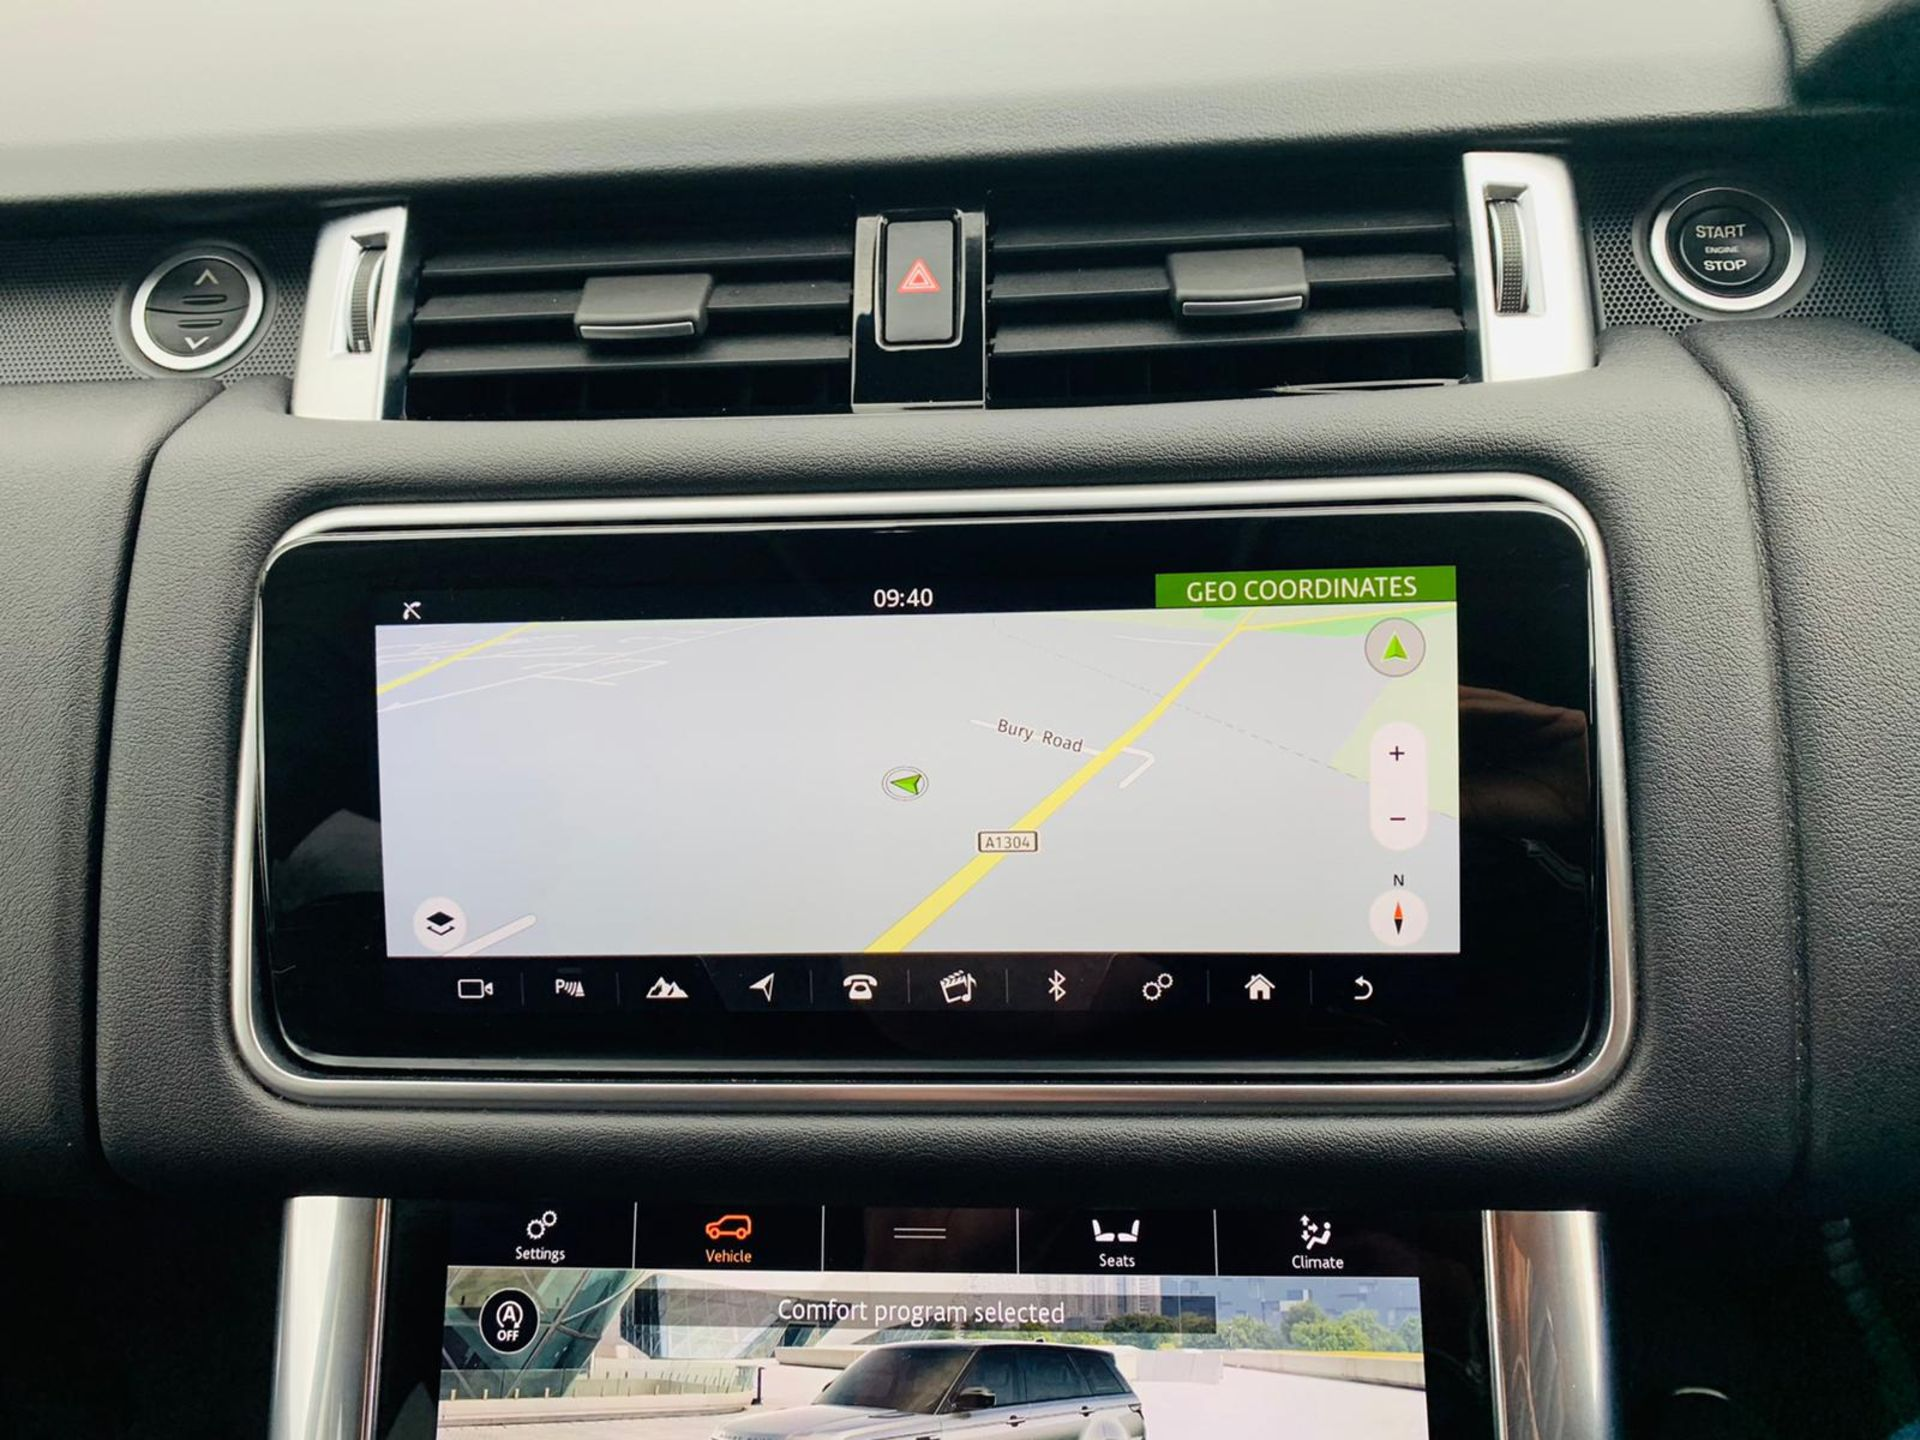 (RESERVE MET) Range Rover Sport 3.0 SDV6 HSE Auto - 2019 - 1 Keeper From New - Virtual Cockpit - - Image 20 of 42